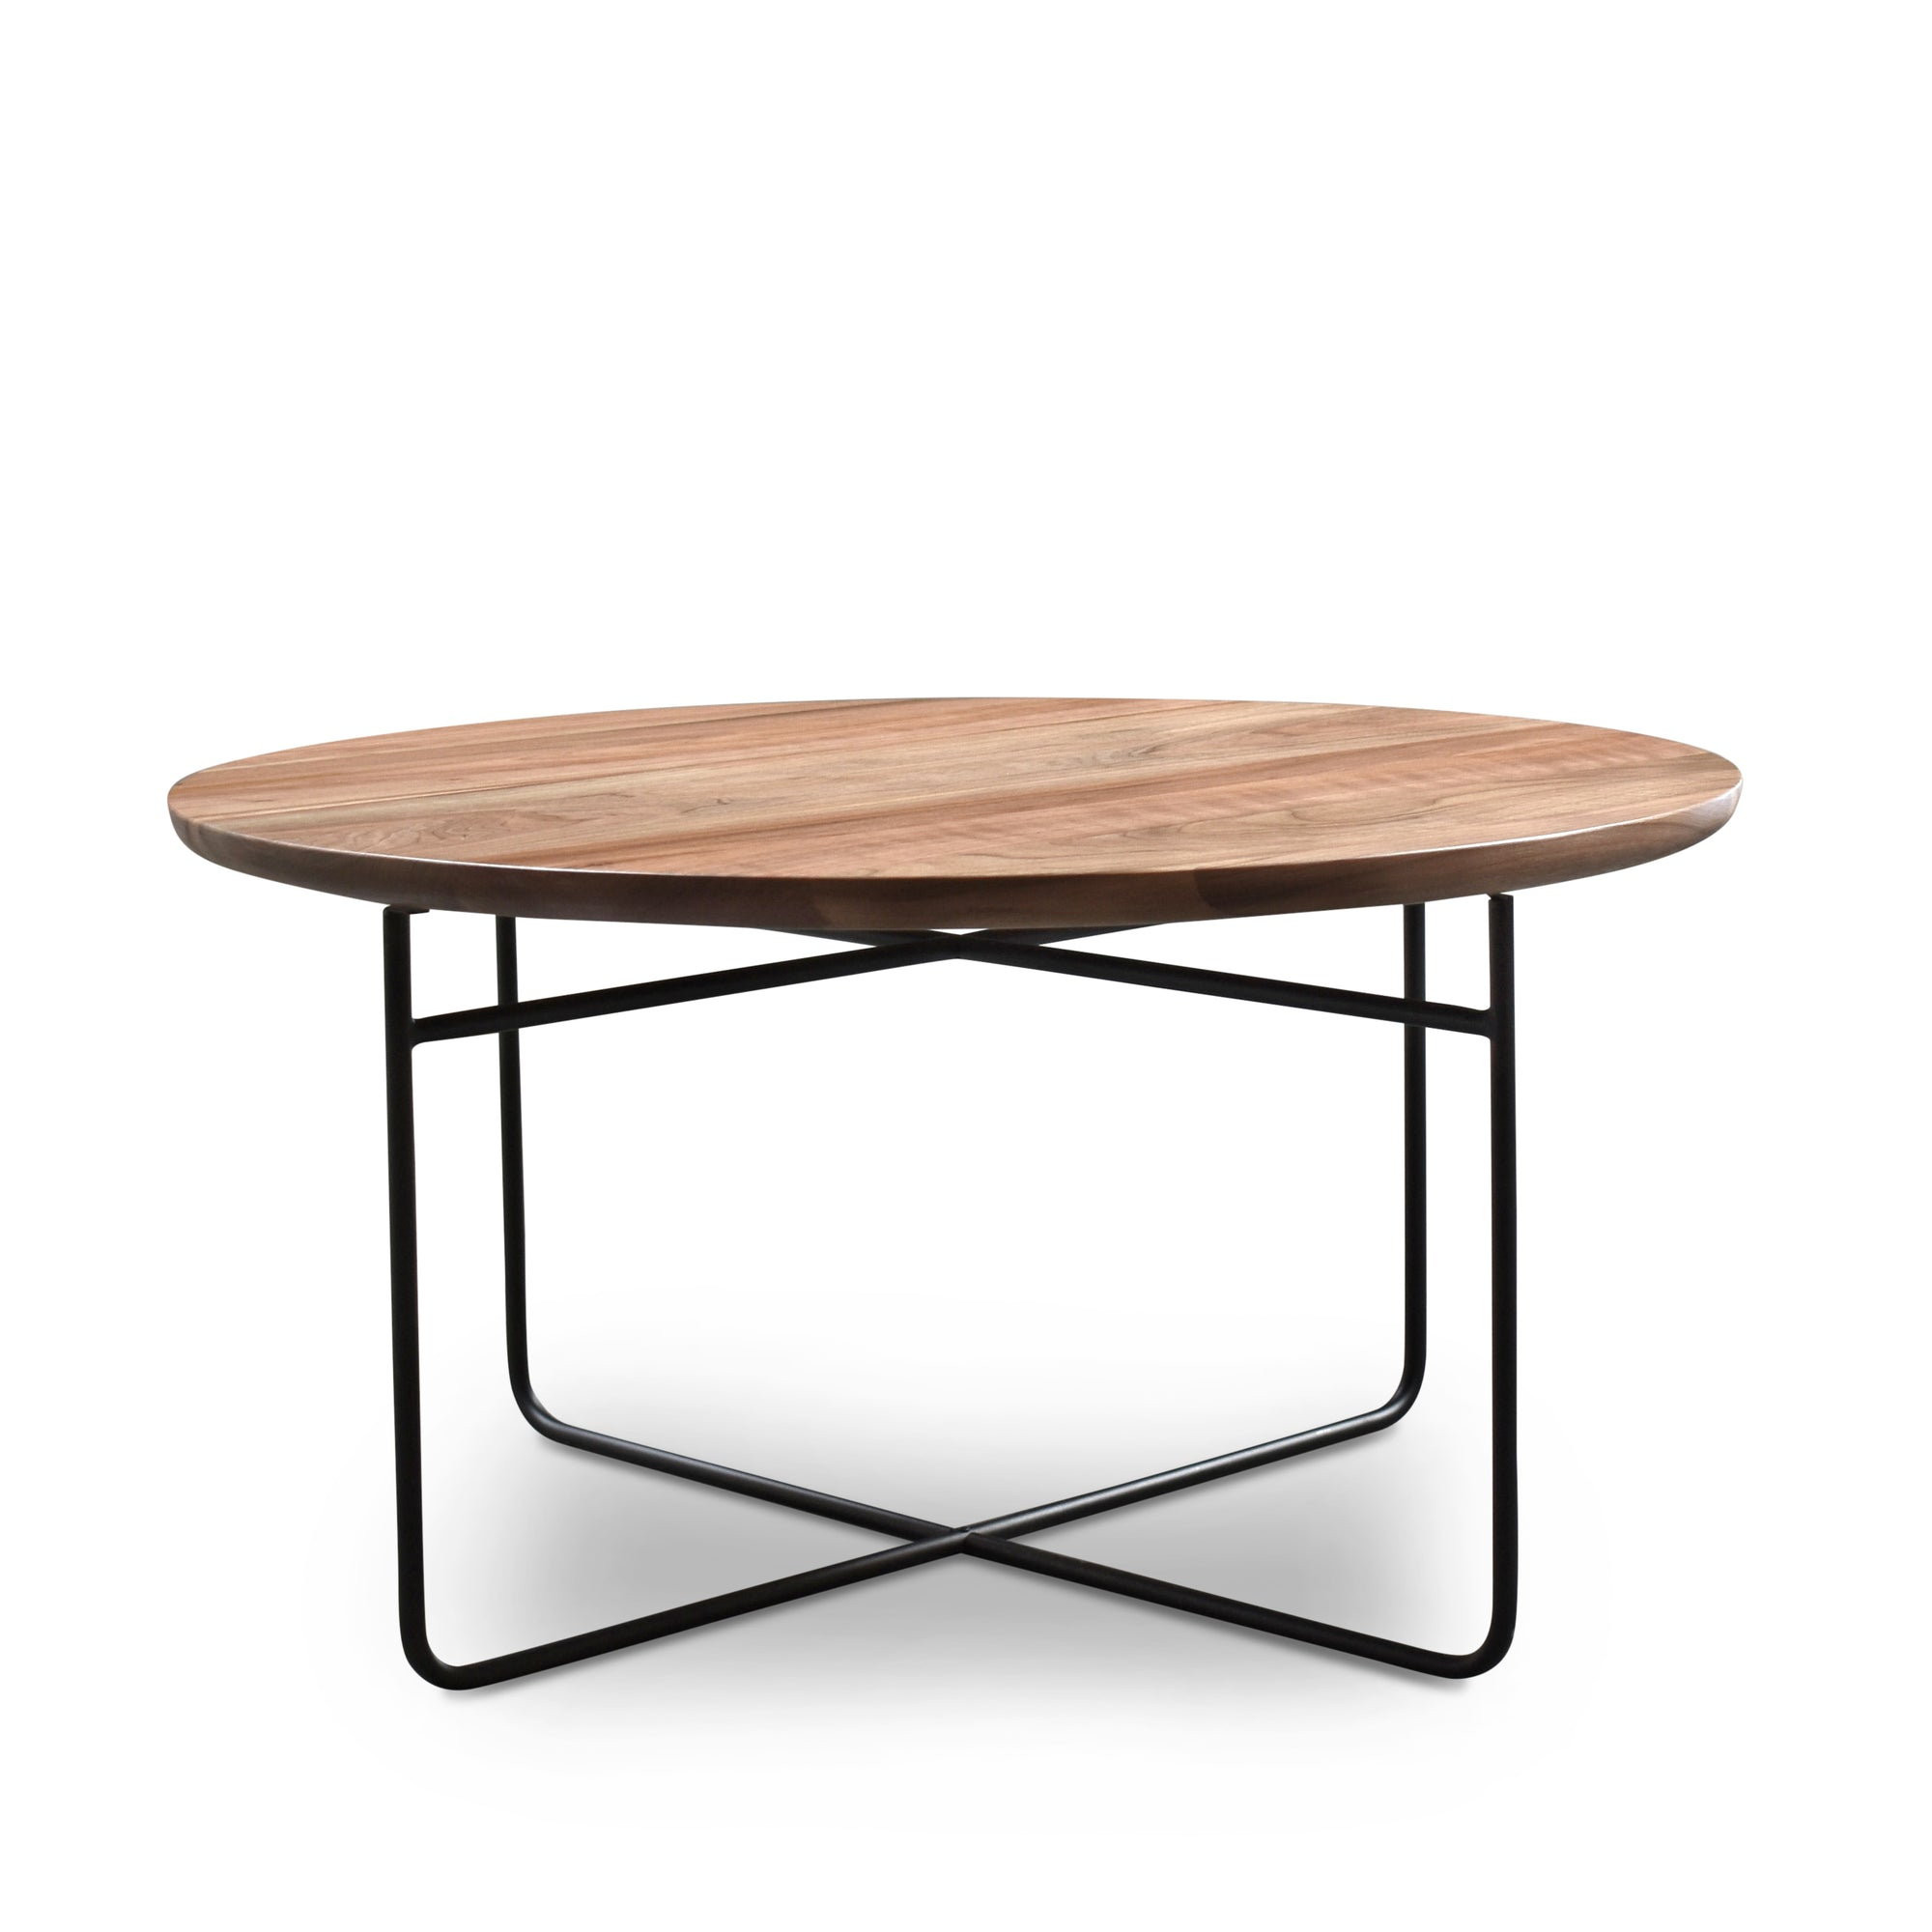 Omar Round Walnut Coffee Table